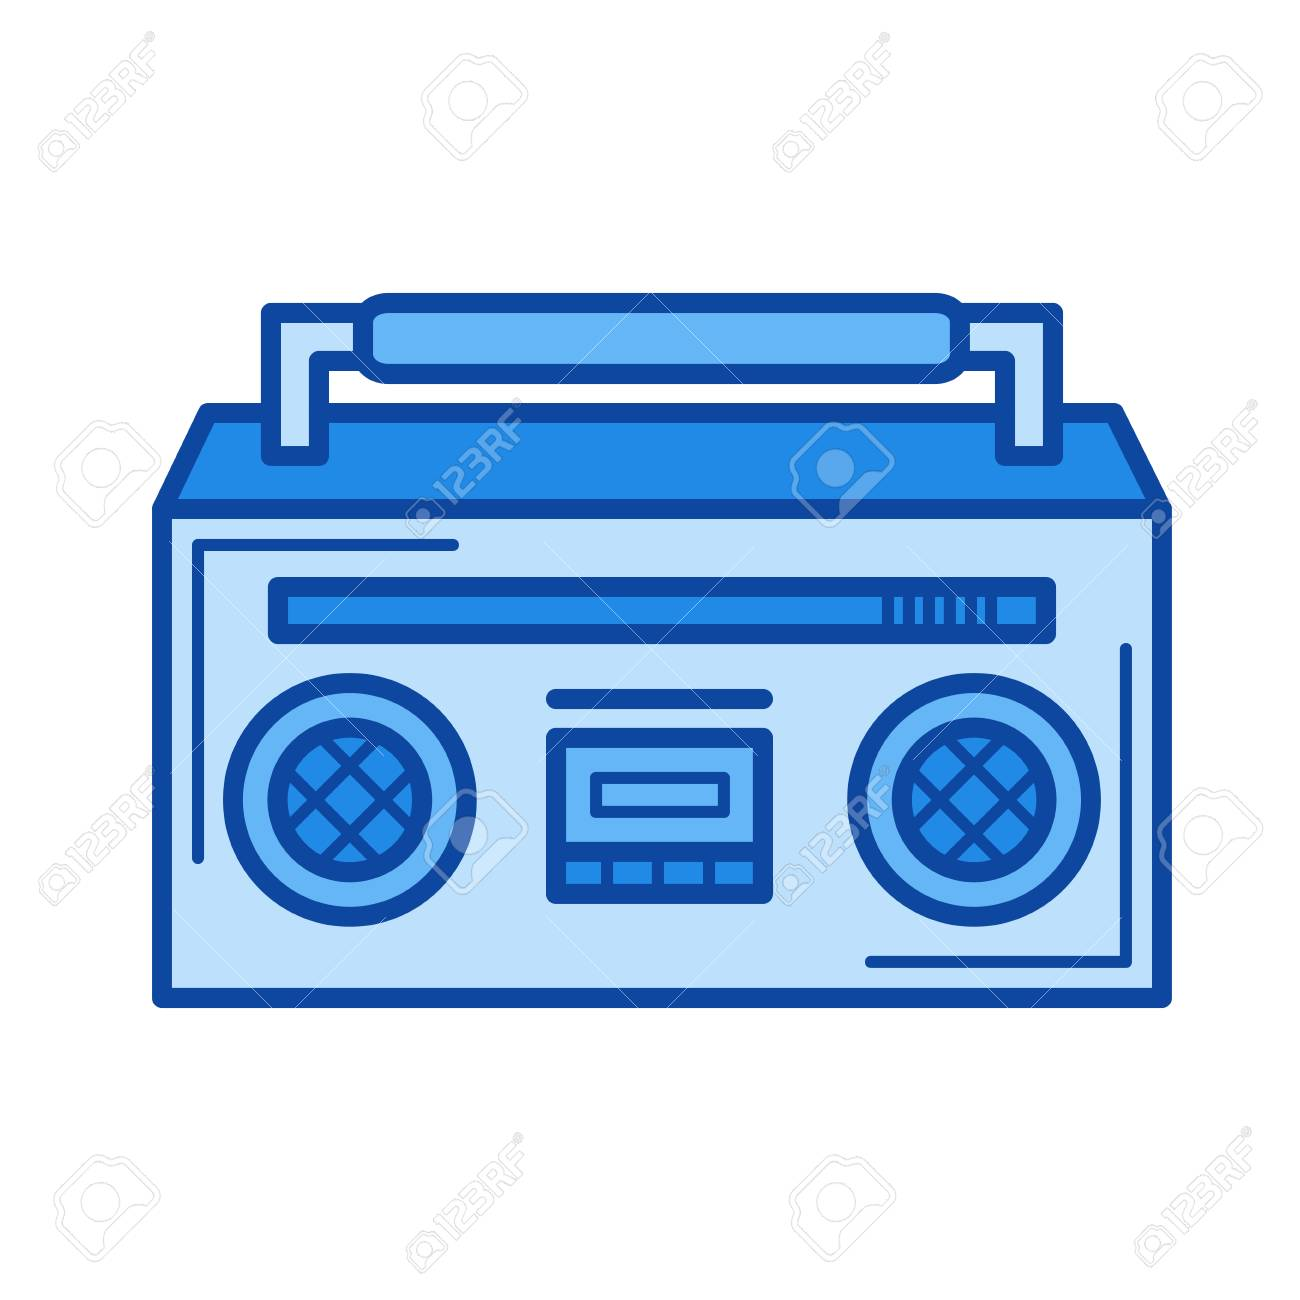 boombox vector line icon isolated on white background boombox rh 123rf com boom box vector free boombox vector image